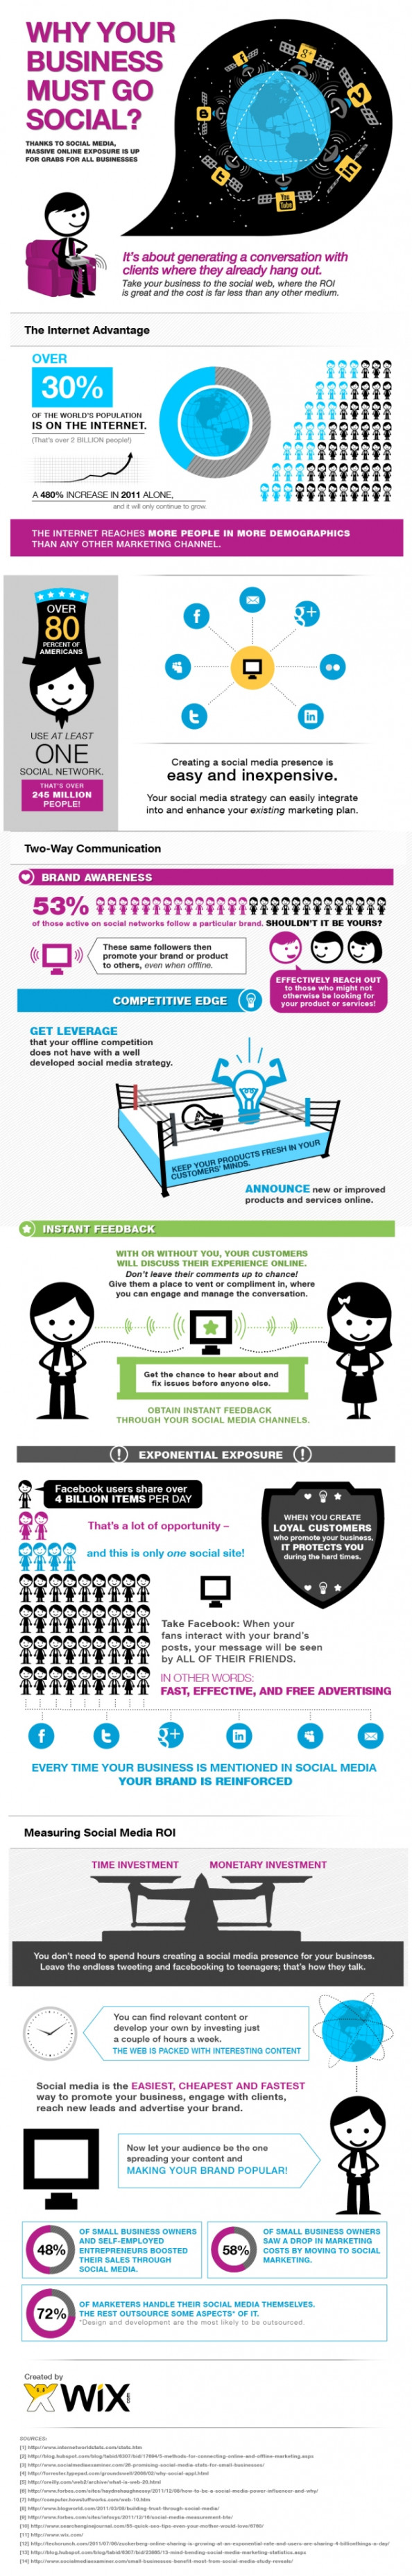 Why Your Business Must Go Social Infographic